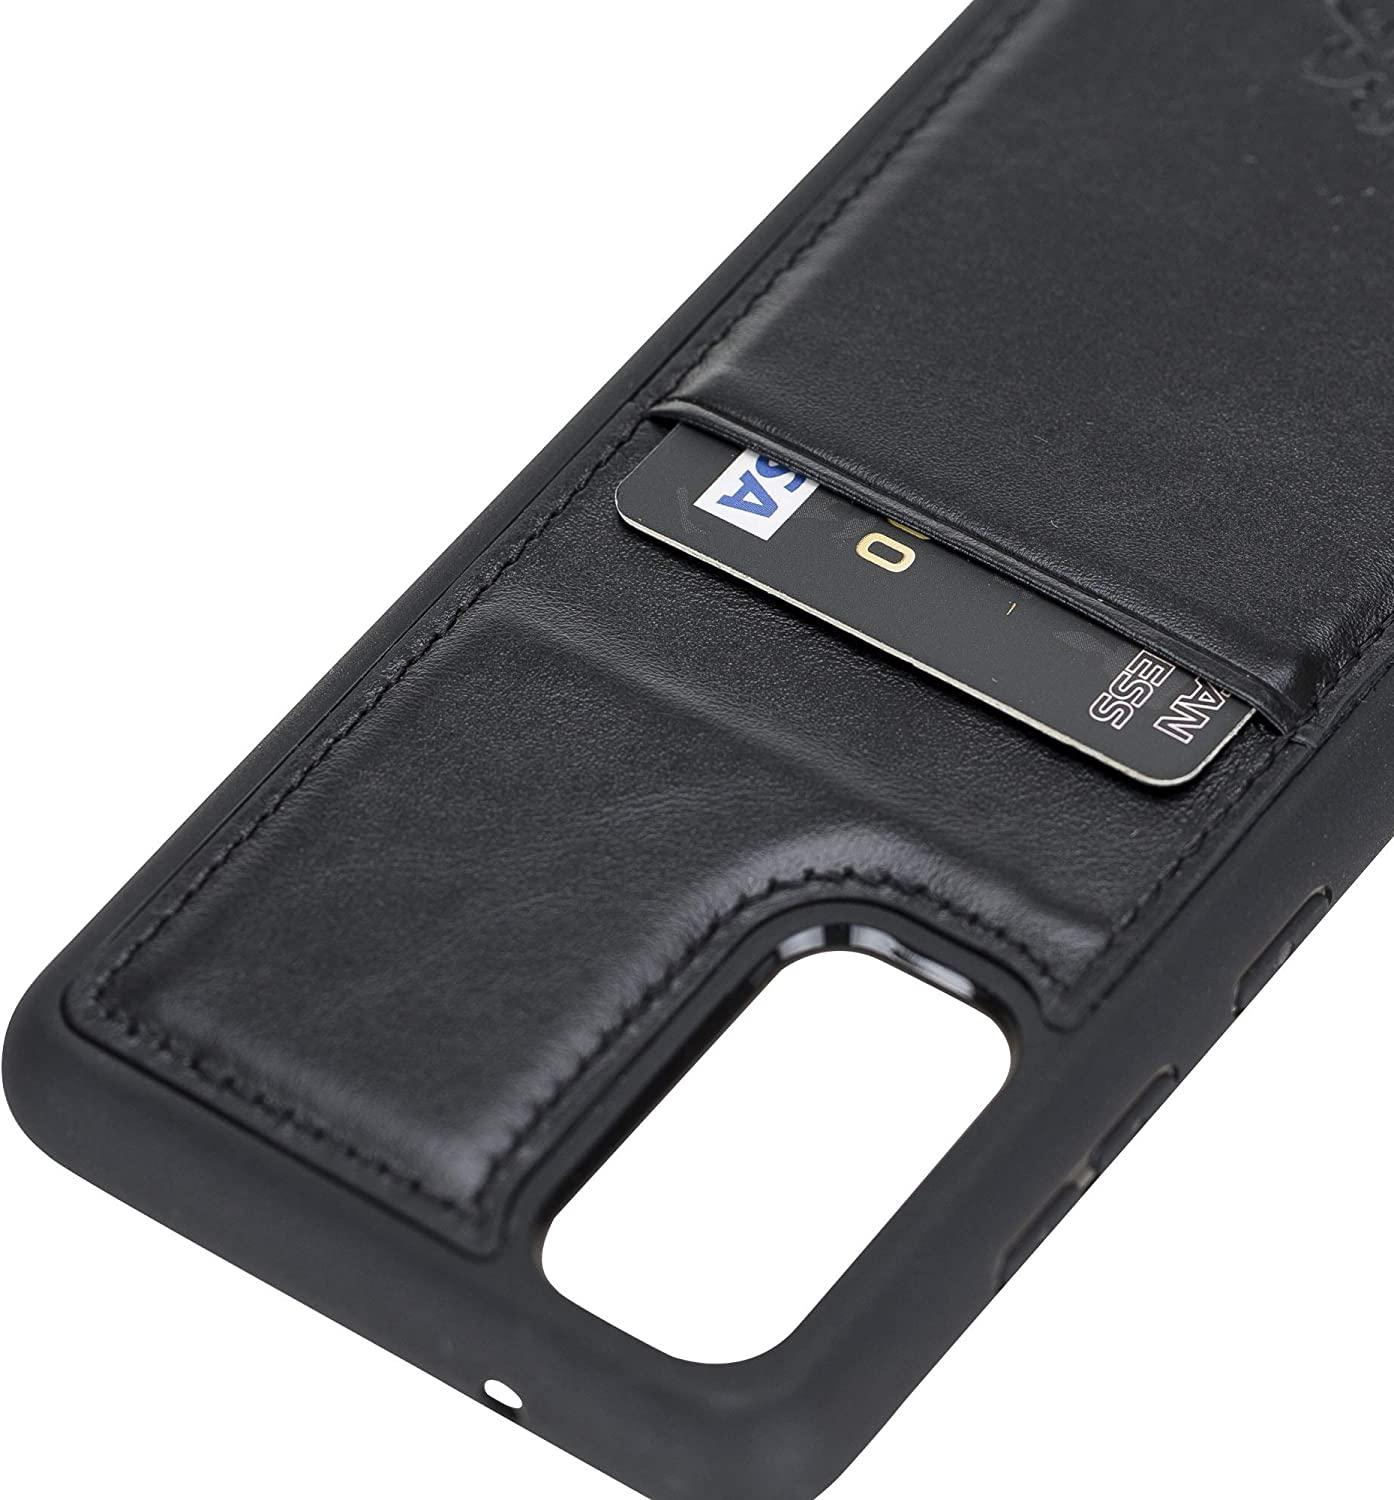 Venito Capri Leather Wallet Case Compatible with Samsung Galaxy S20 (6.2 inch) – Extra Secure with RFID Blocking & Padded Back Cover - Rustic Black